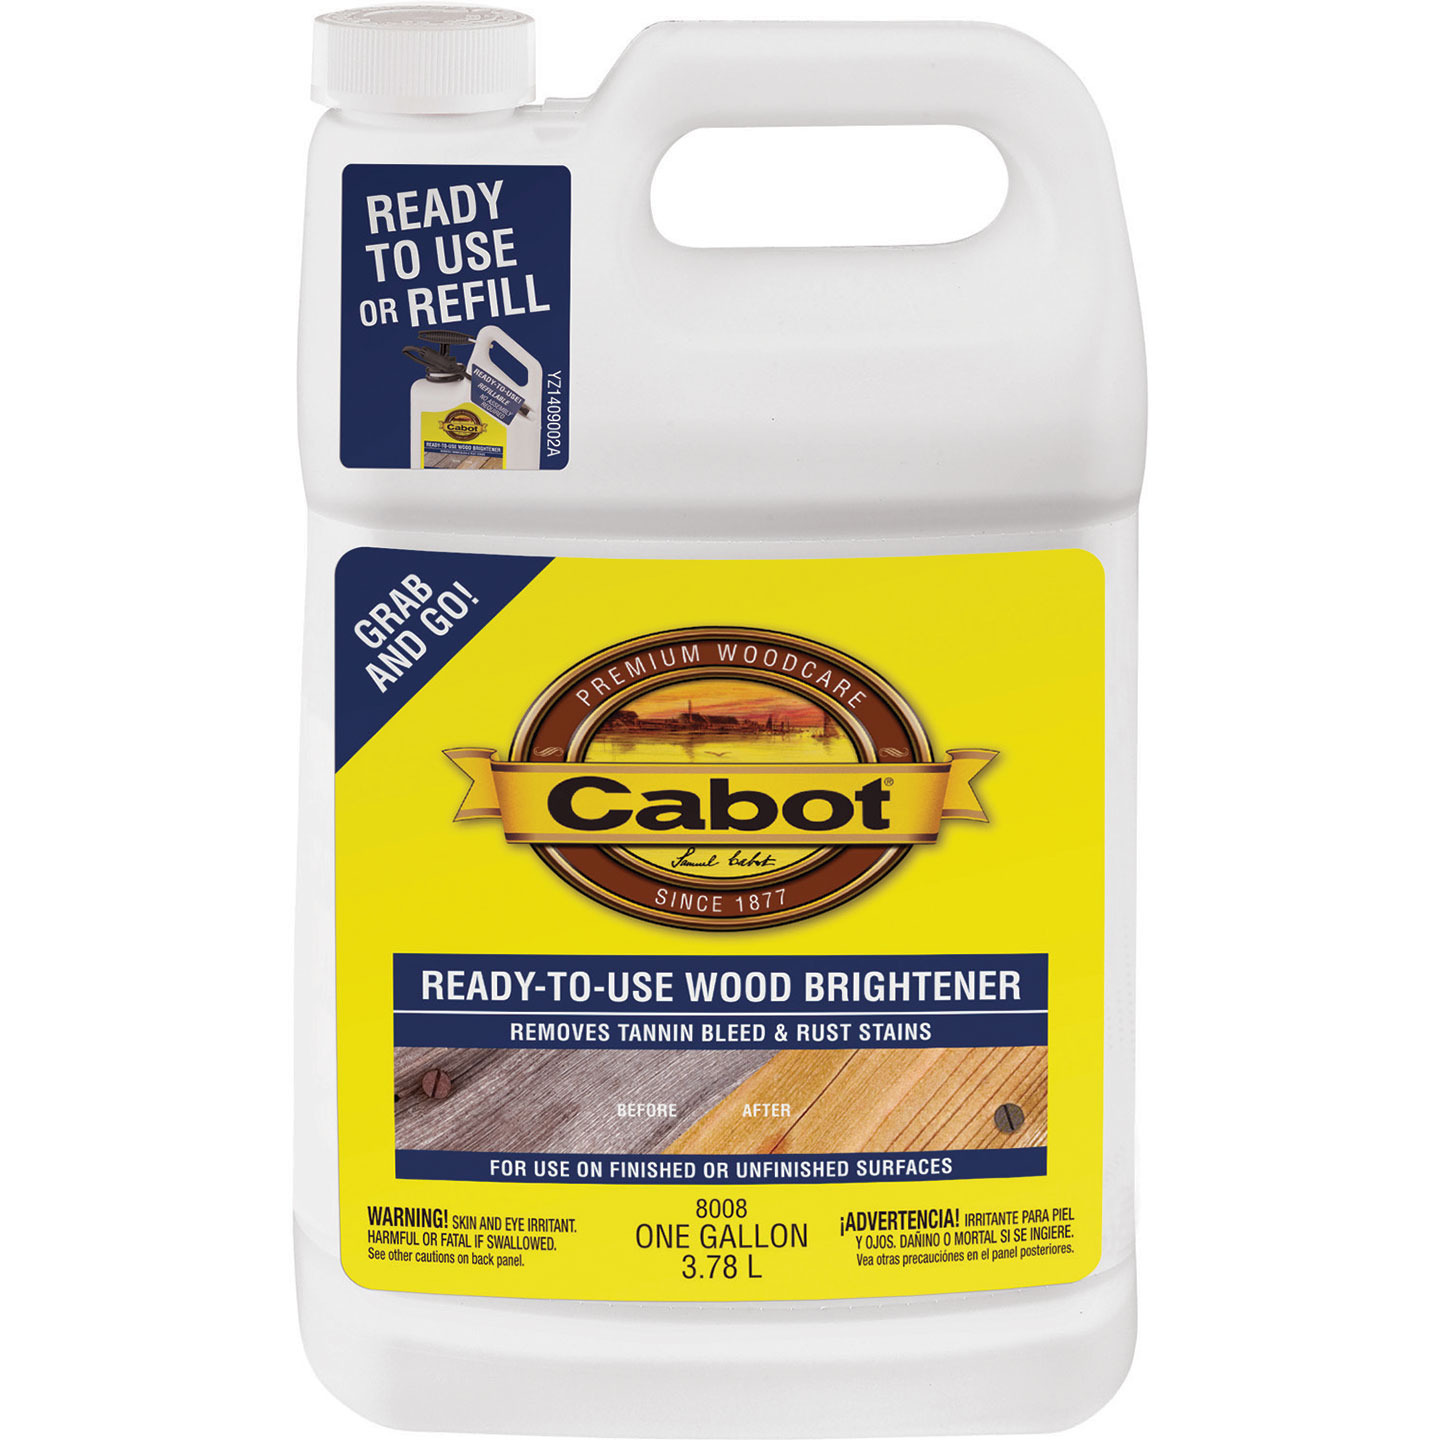 Cabot 1 Gal. Ready-To-Use Wood Brightener Image 1